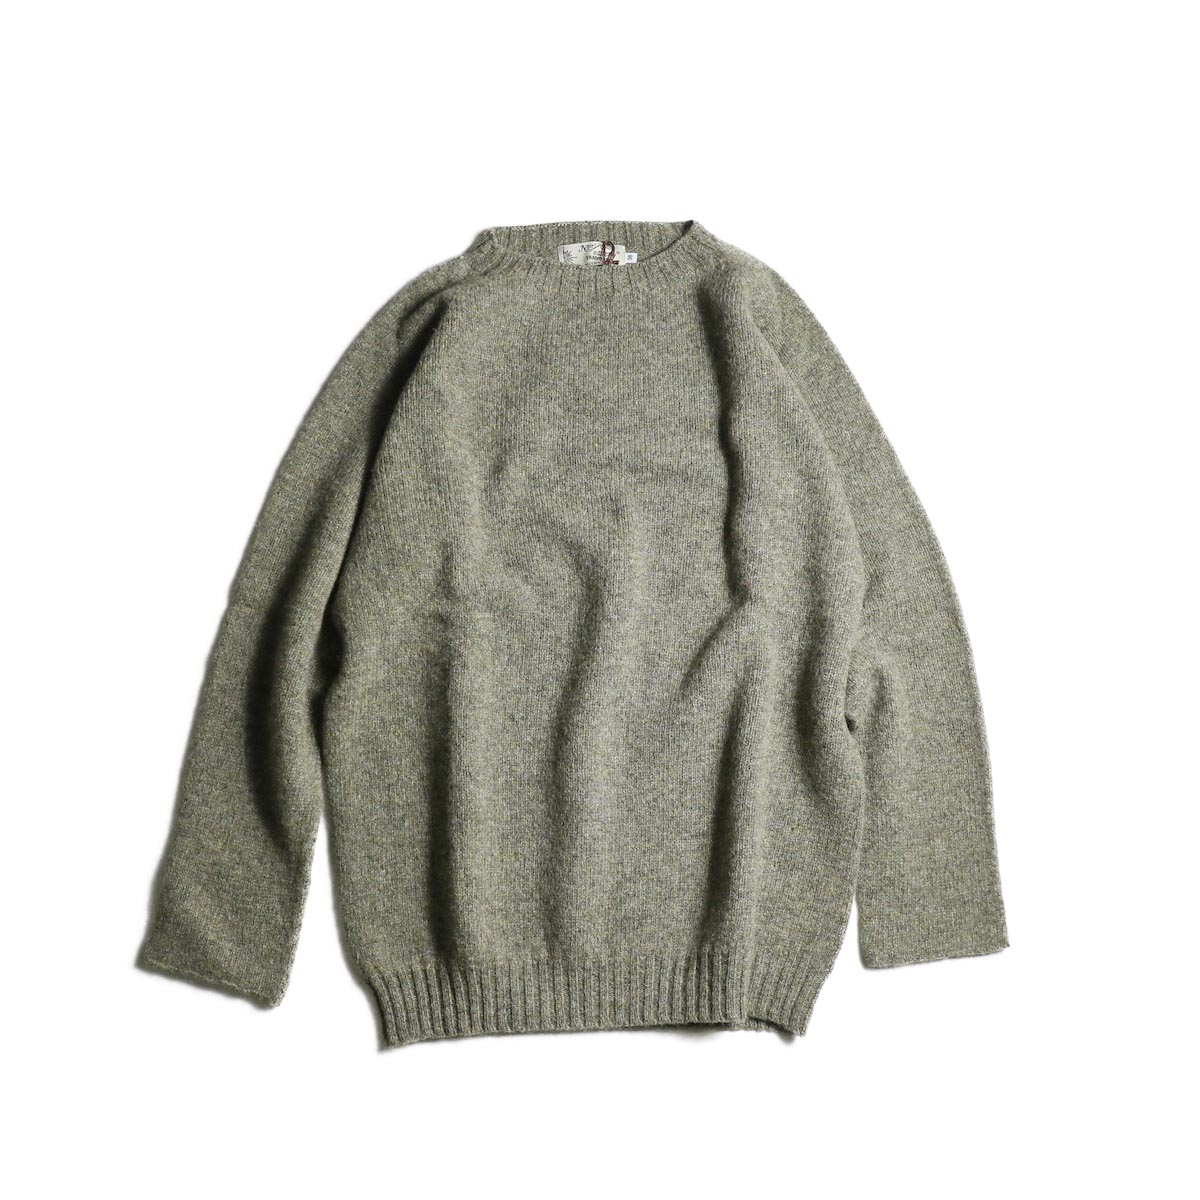 NOR'EASTERLY / L/S Crew Neck Knit (Oyster)